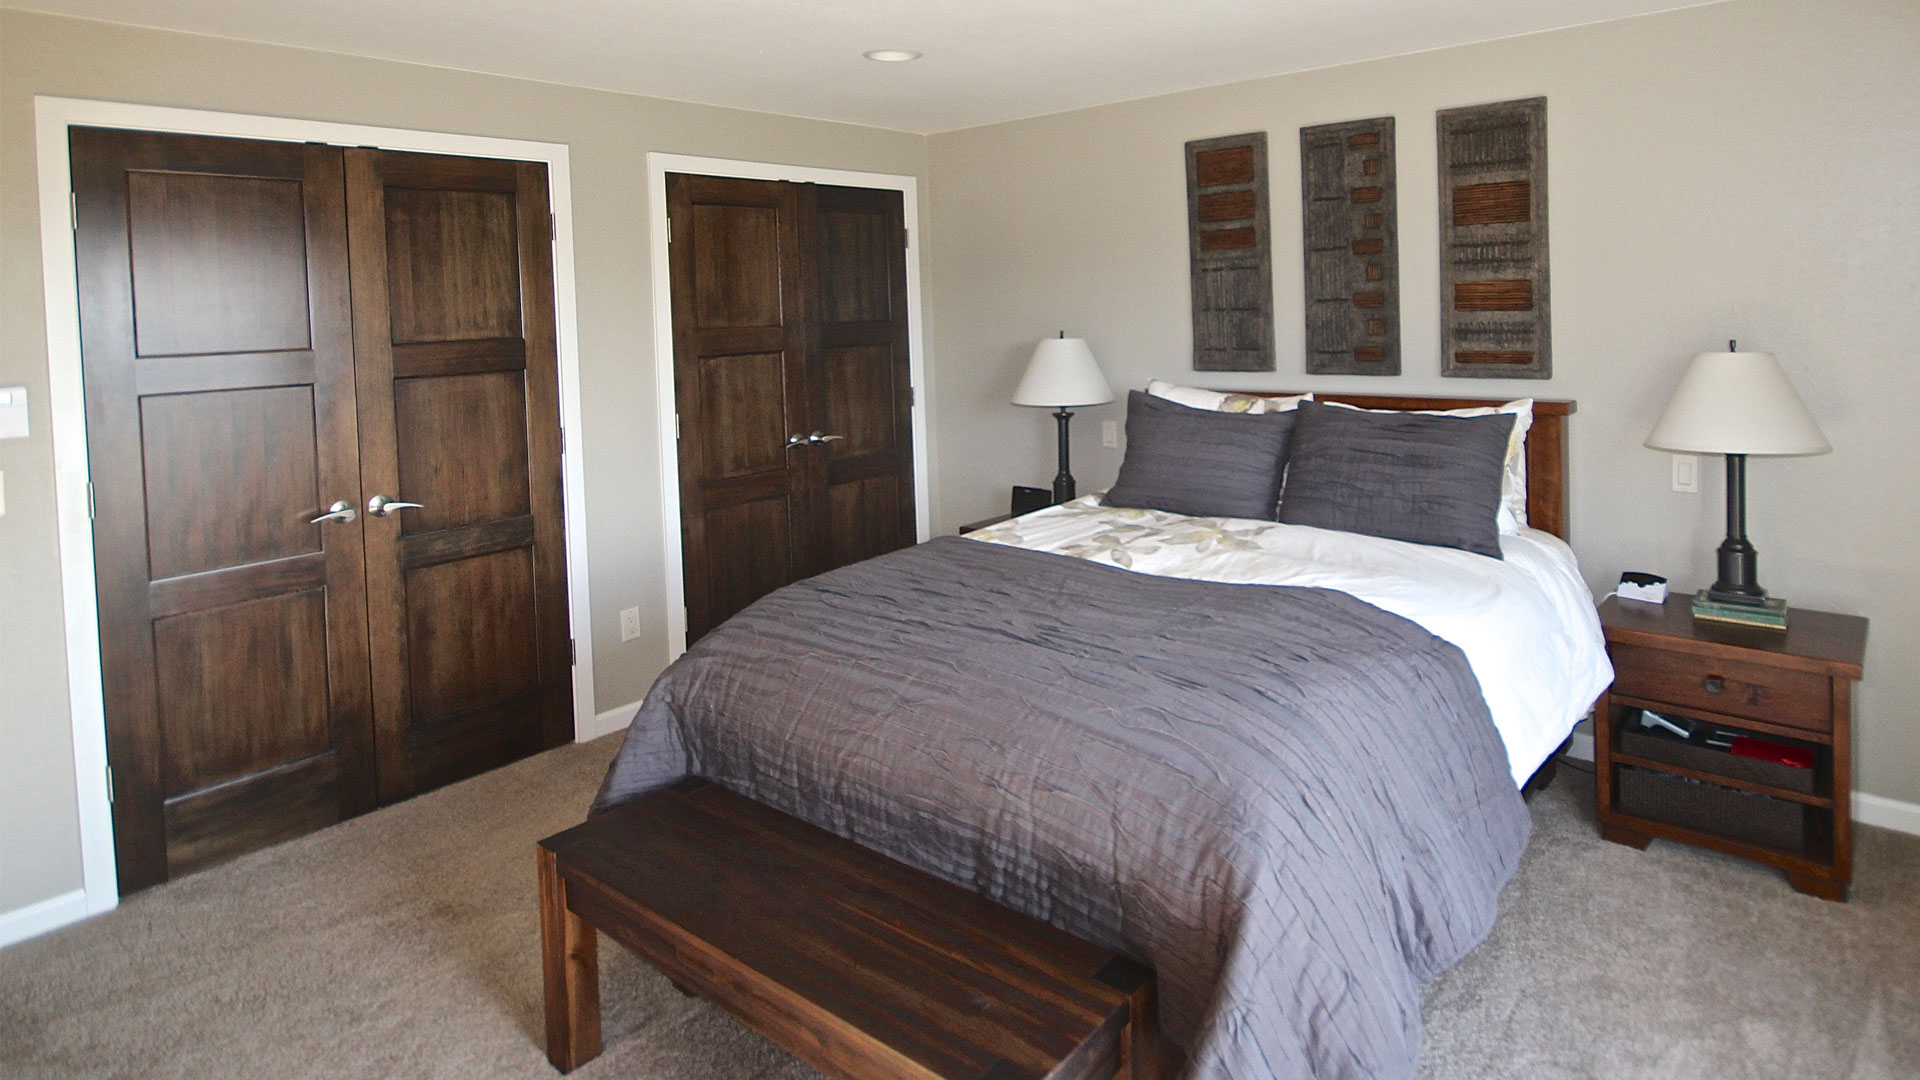 Free HTML5 Template by FREEHTML5.co